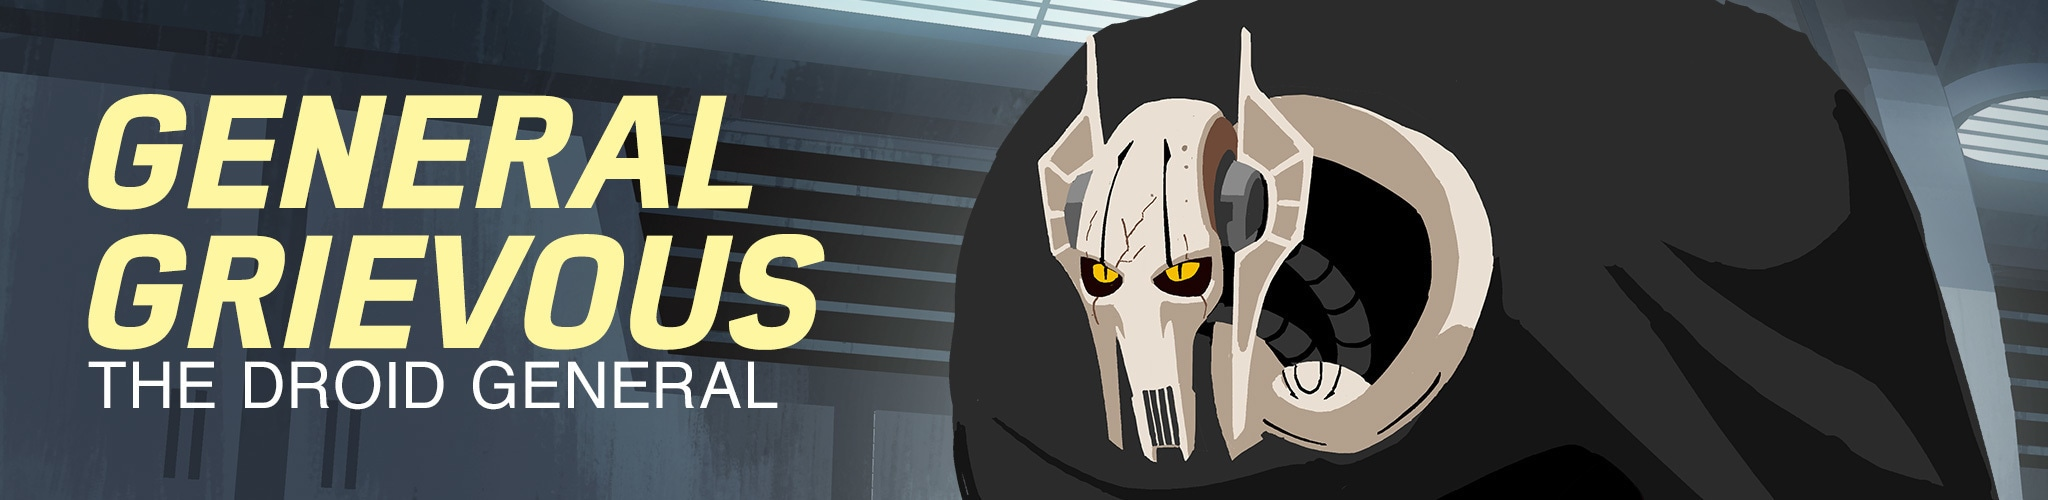 General Grievous - The Droid General